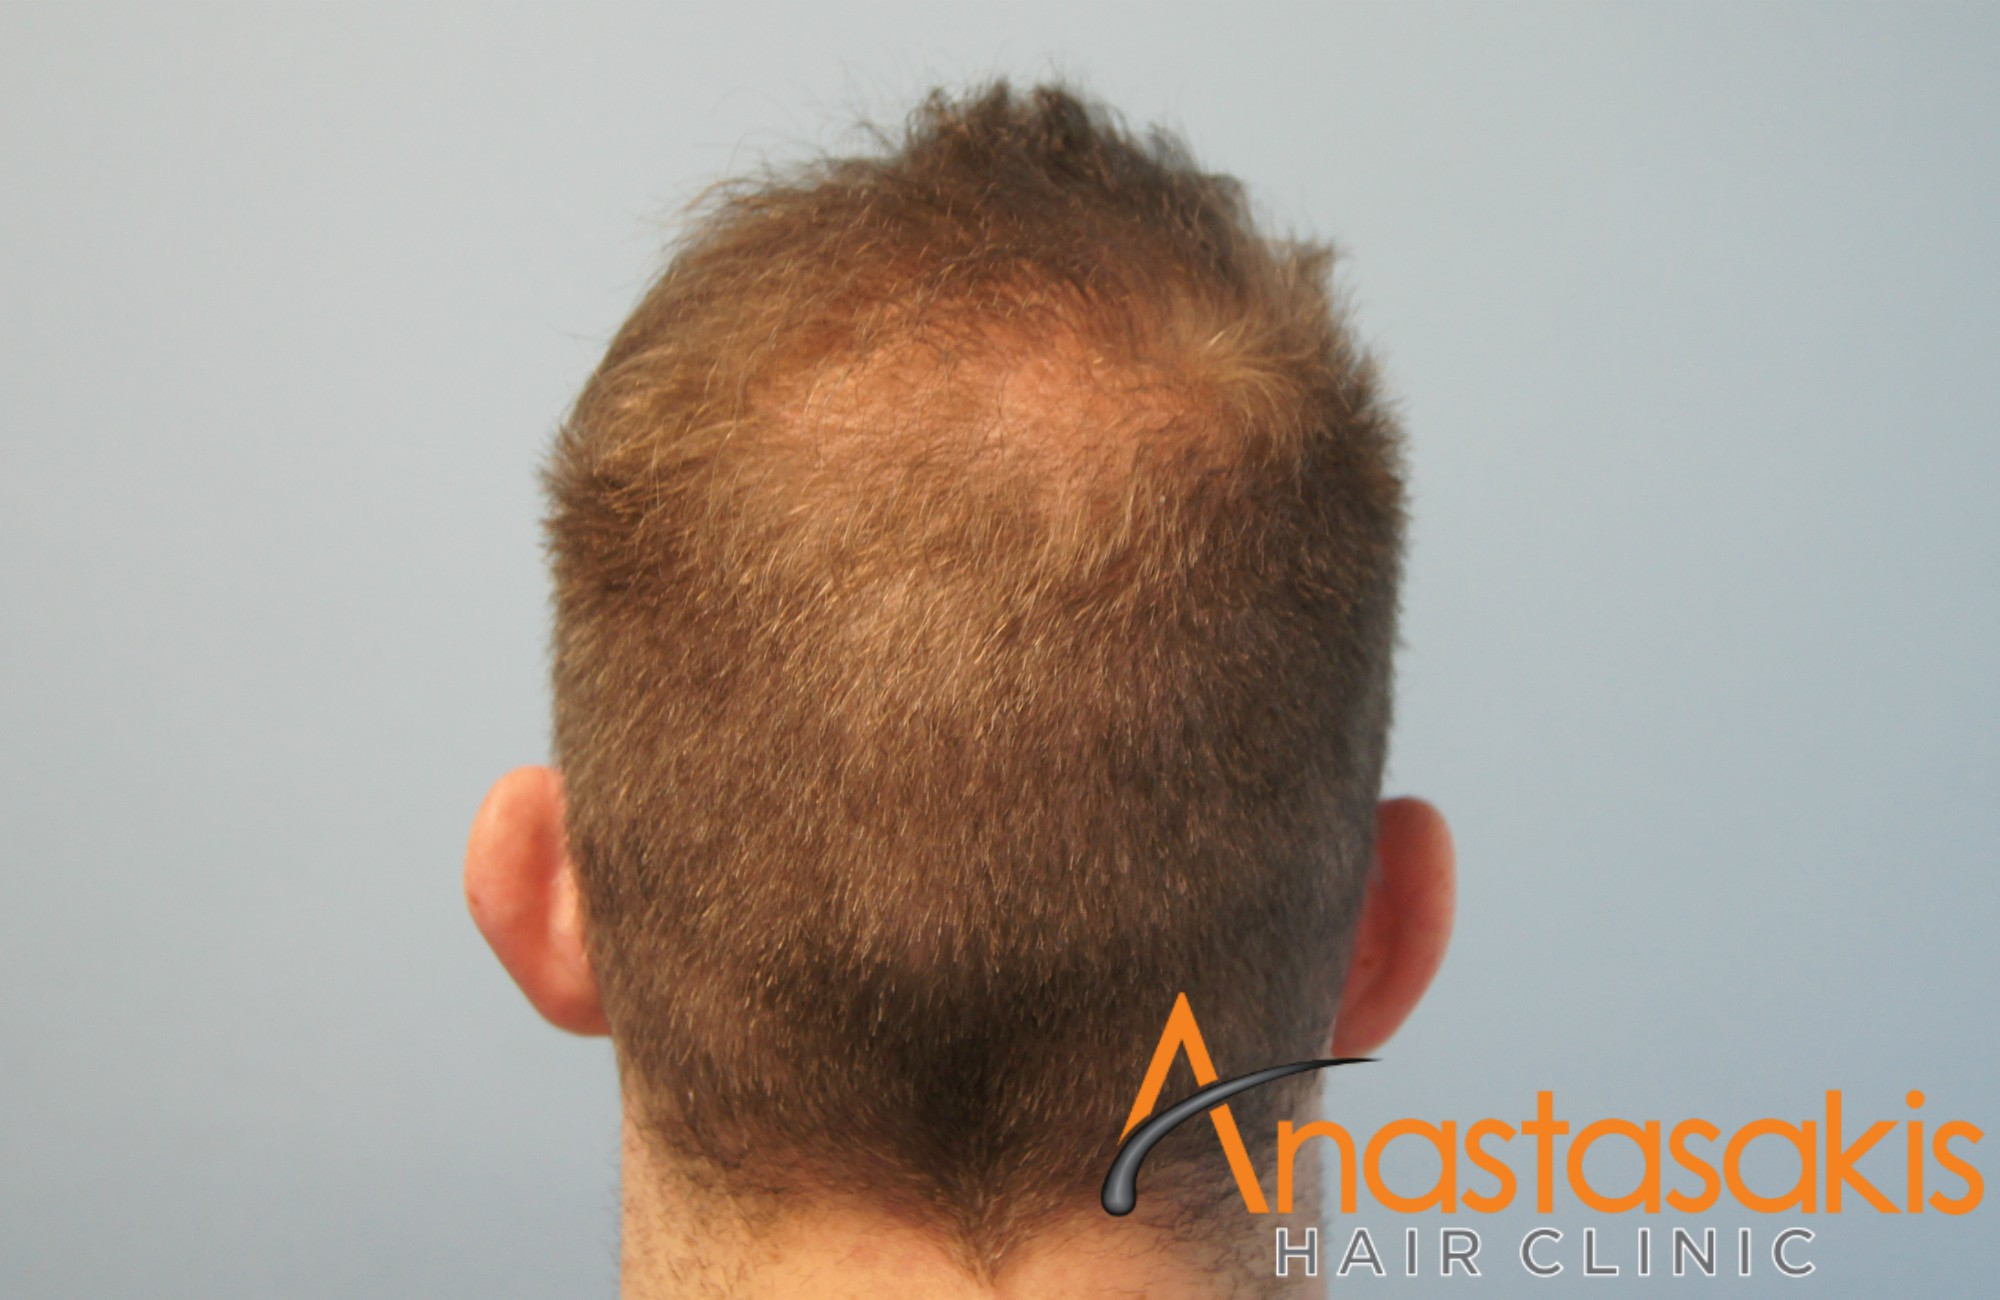 1500fus-fue-mm-anastasakis-hair-clinic-RESULT